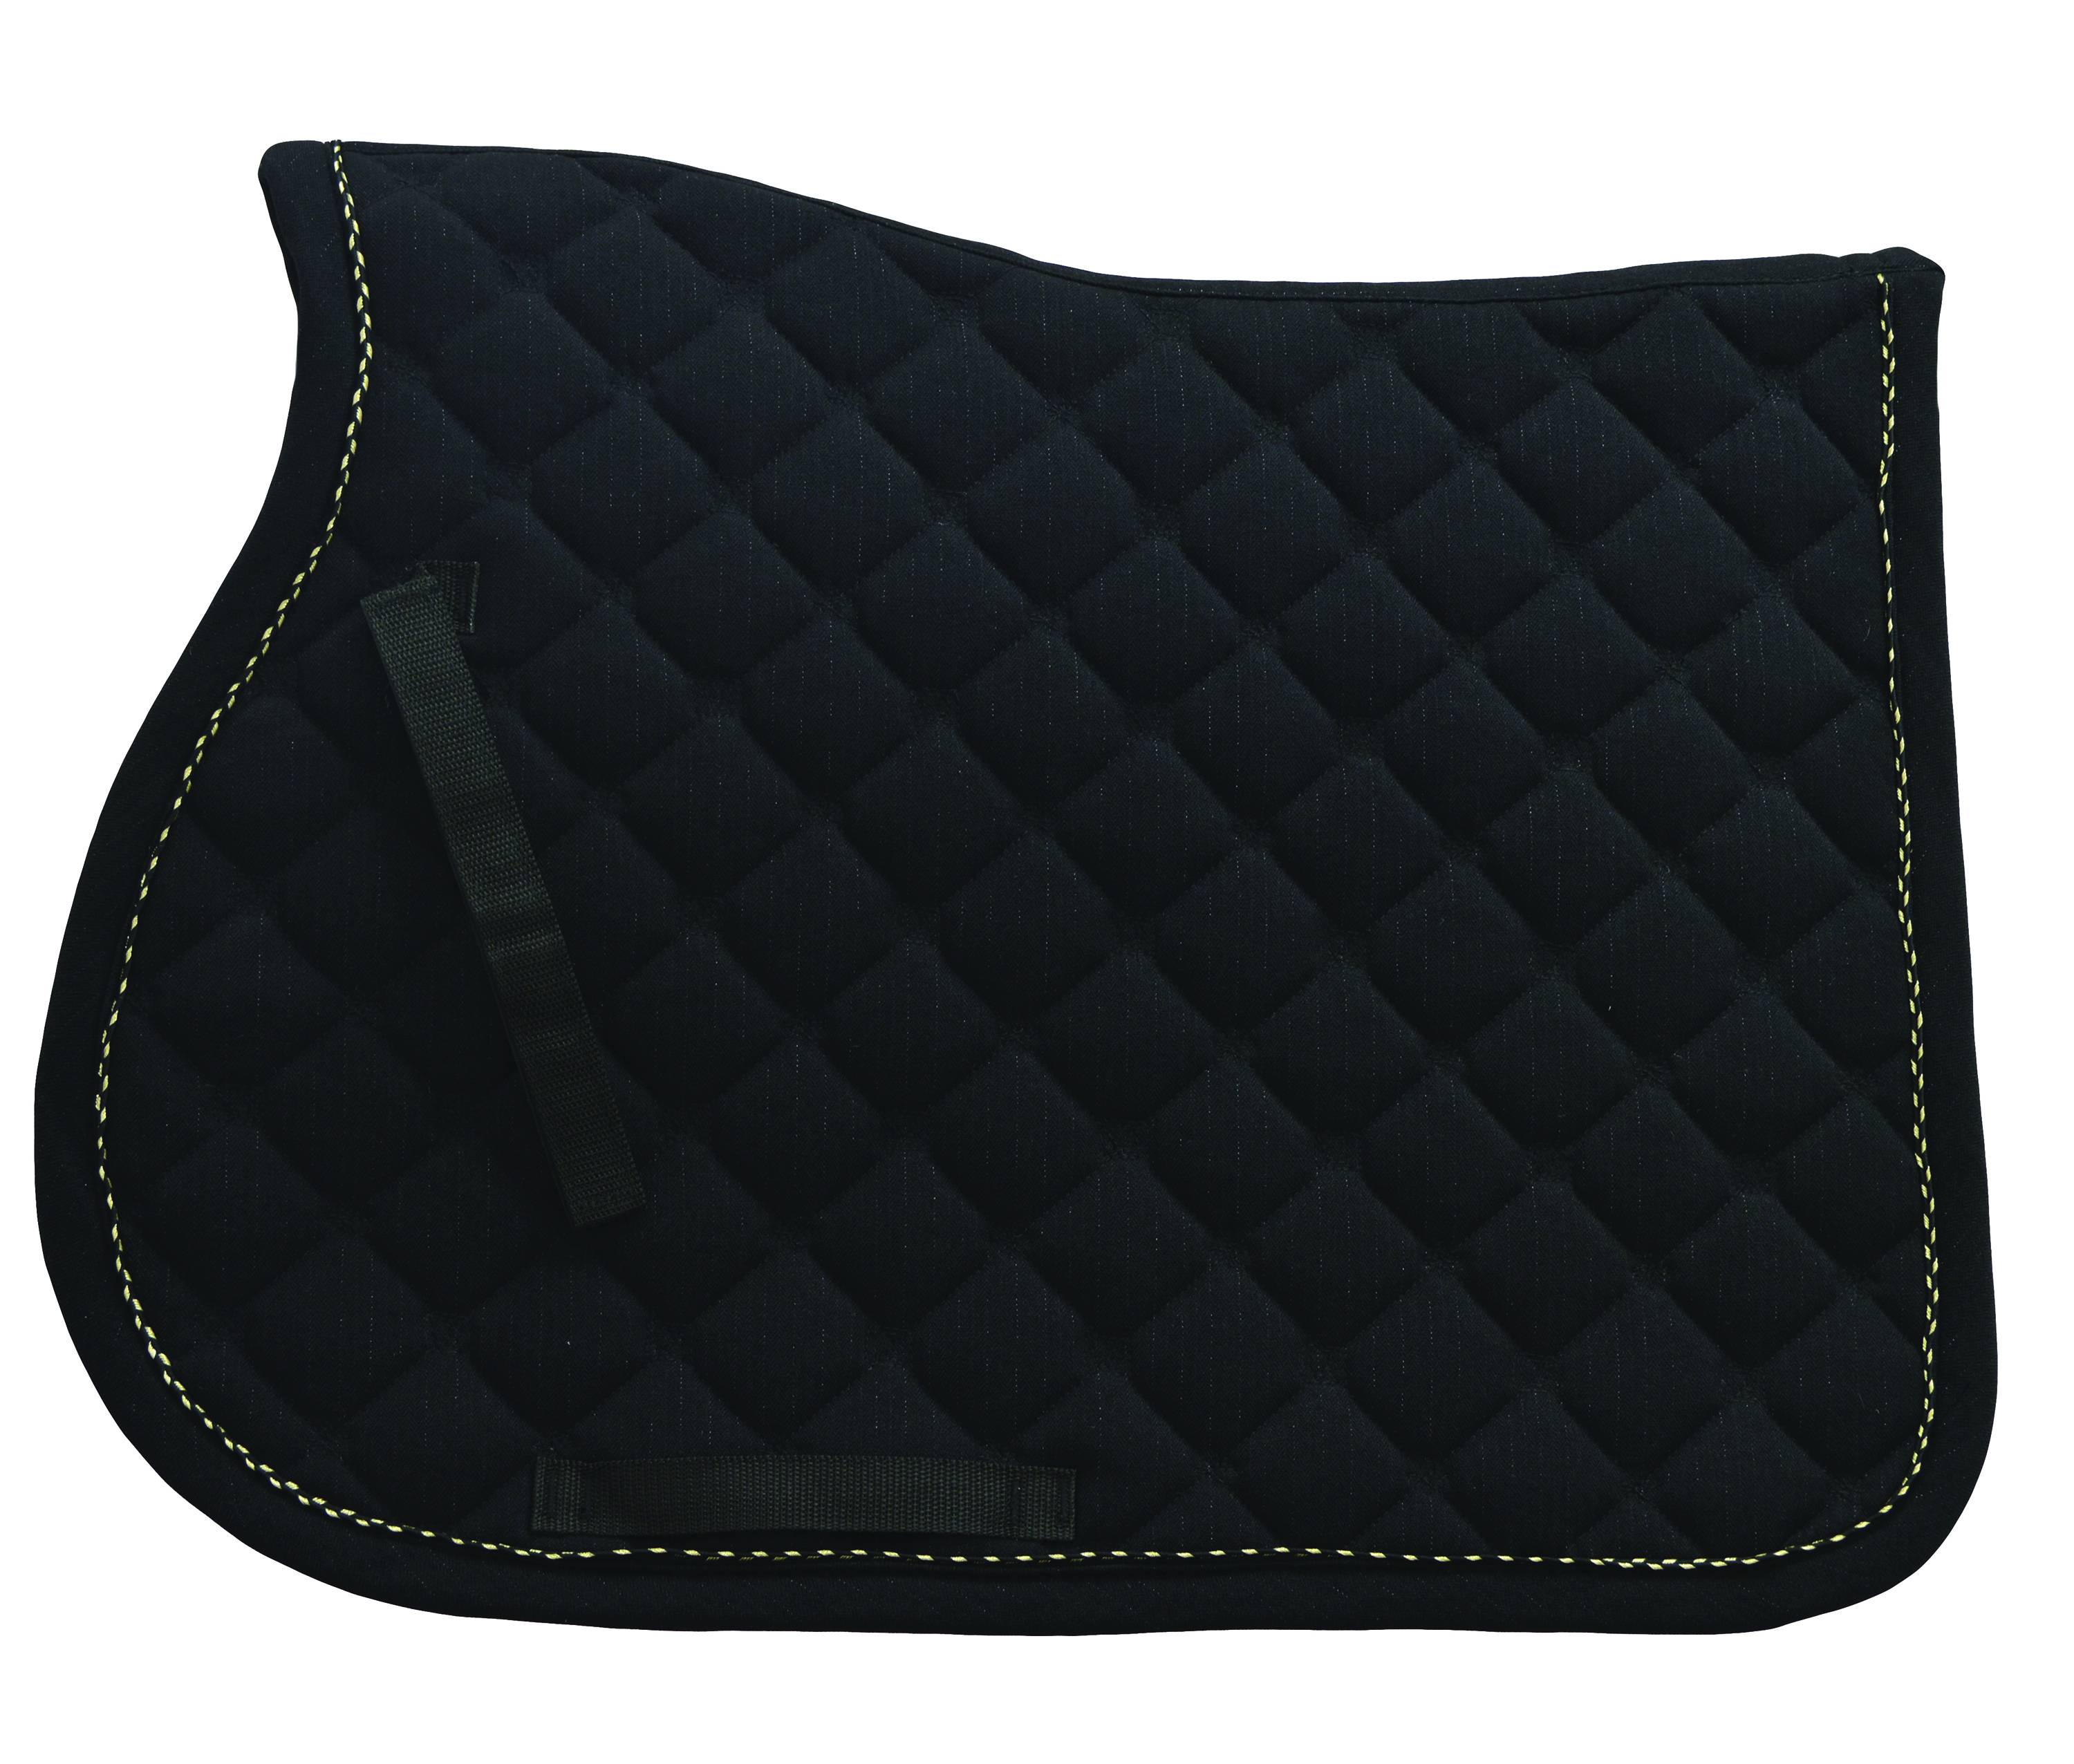 Lami-Cell Royal Metallic Collection Saddle Pad